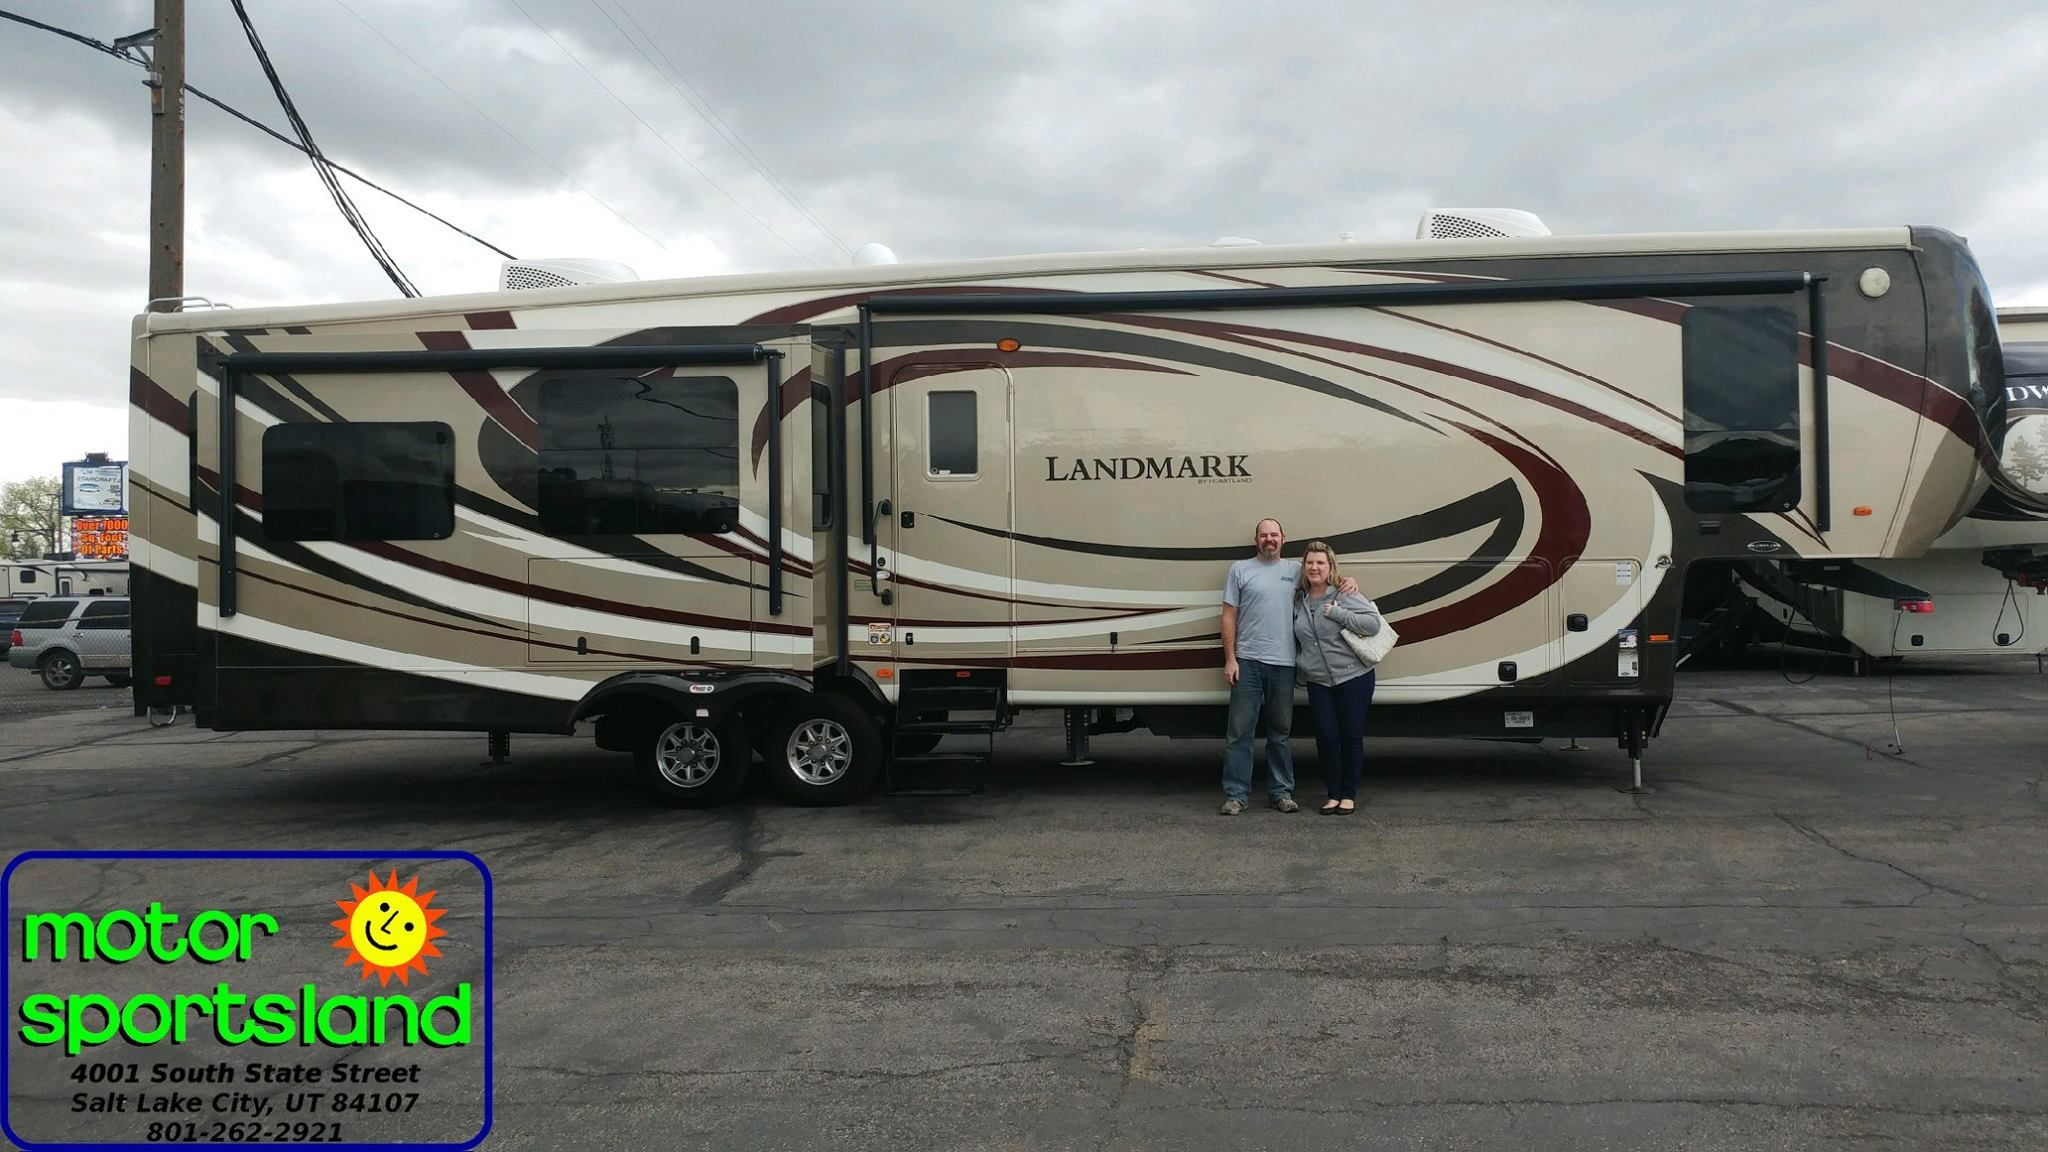 Have fun in your new Landmark by Heartland RVs